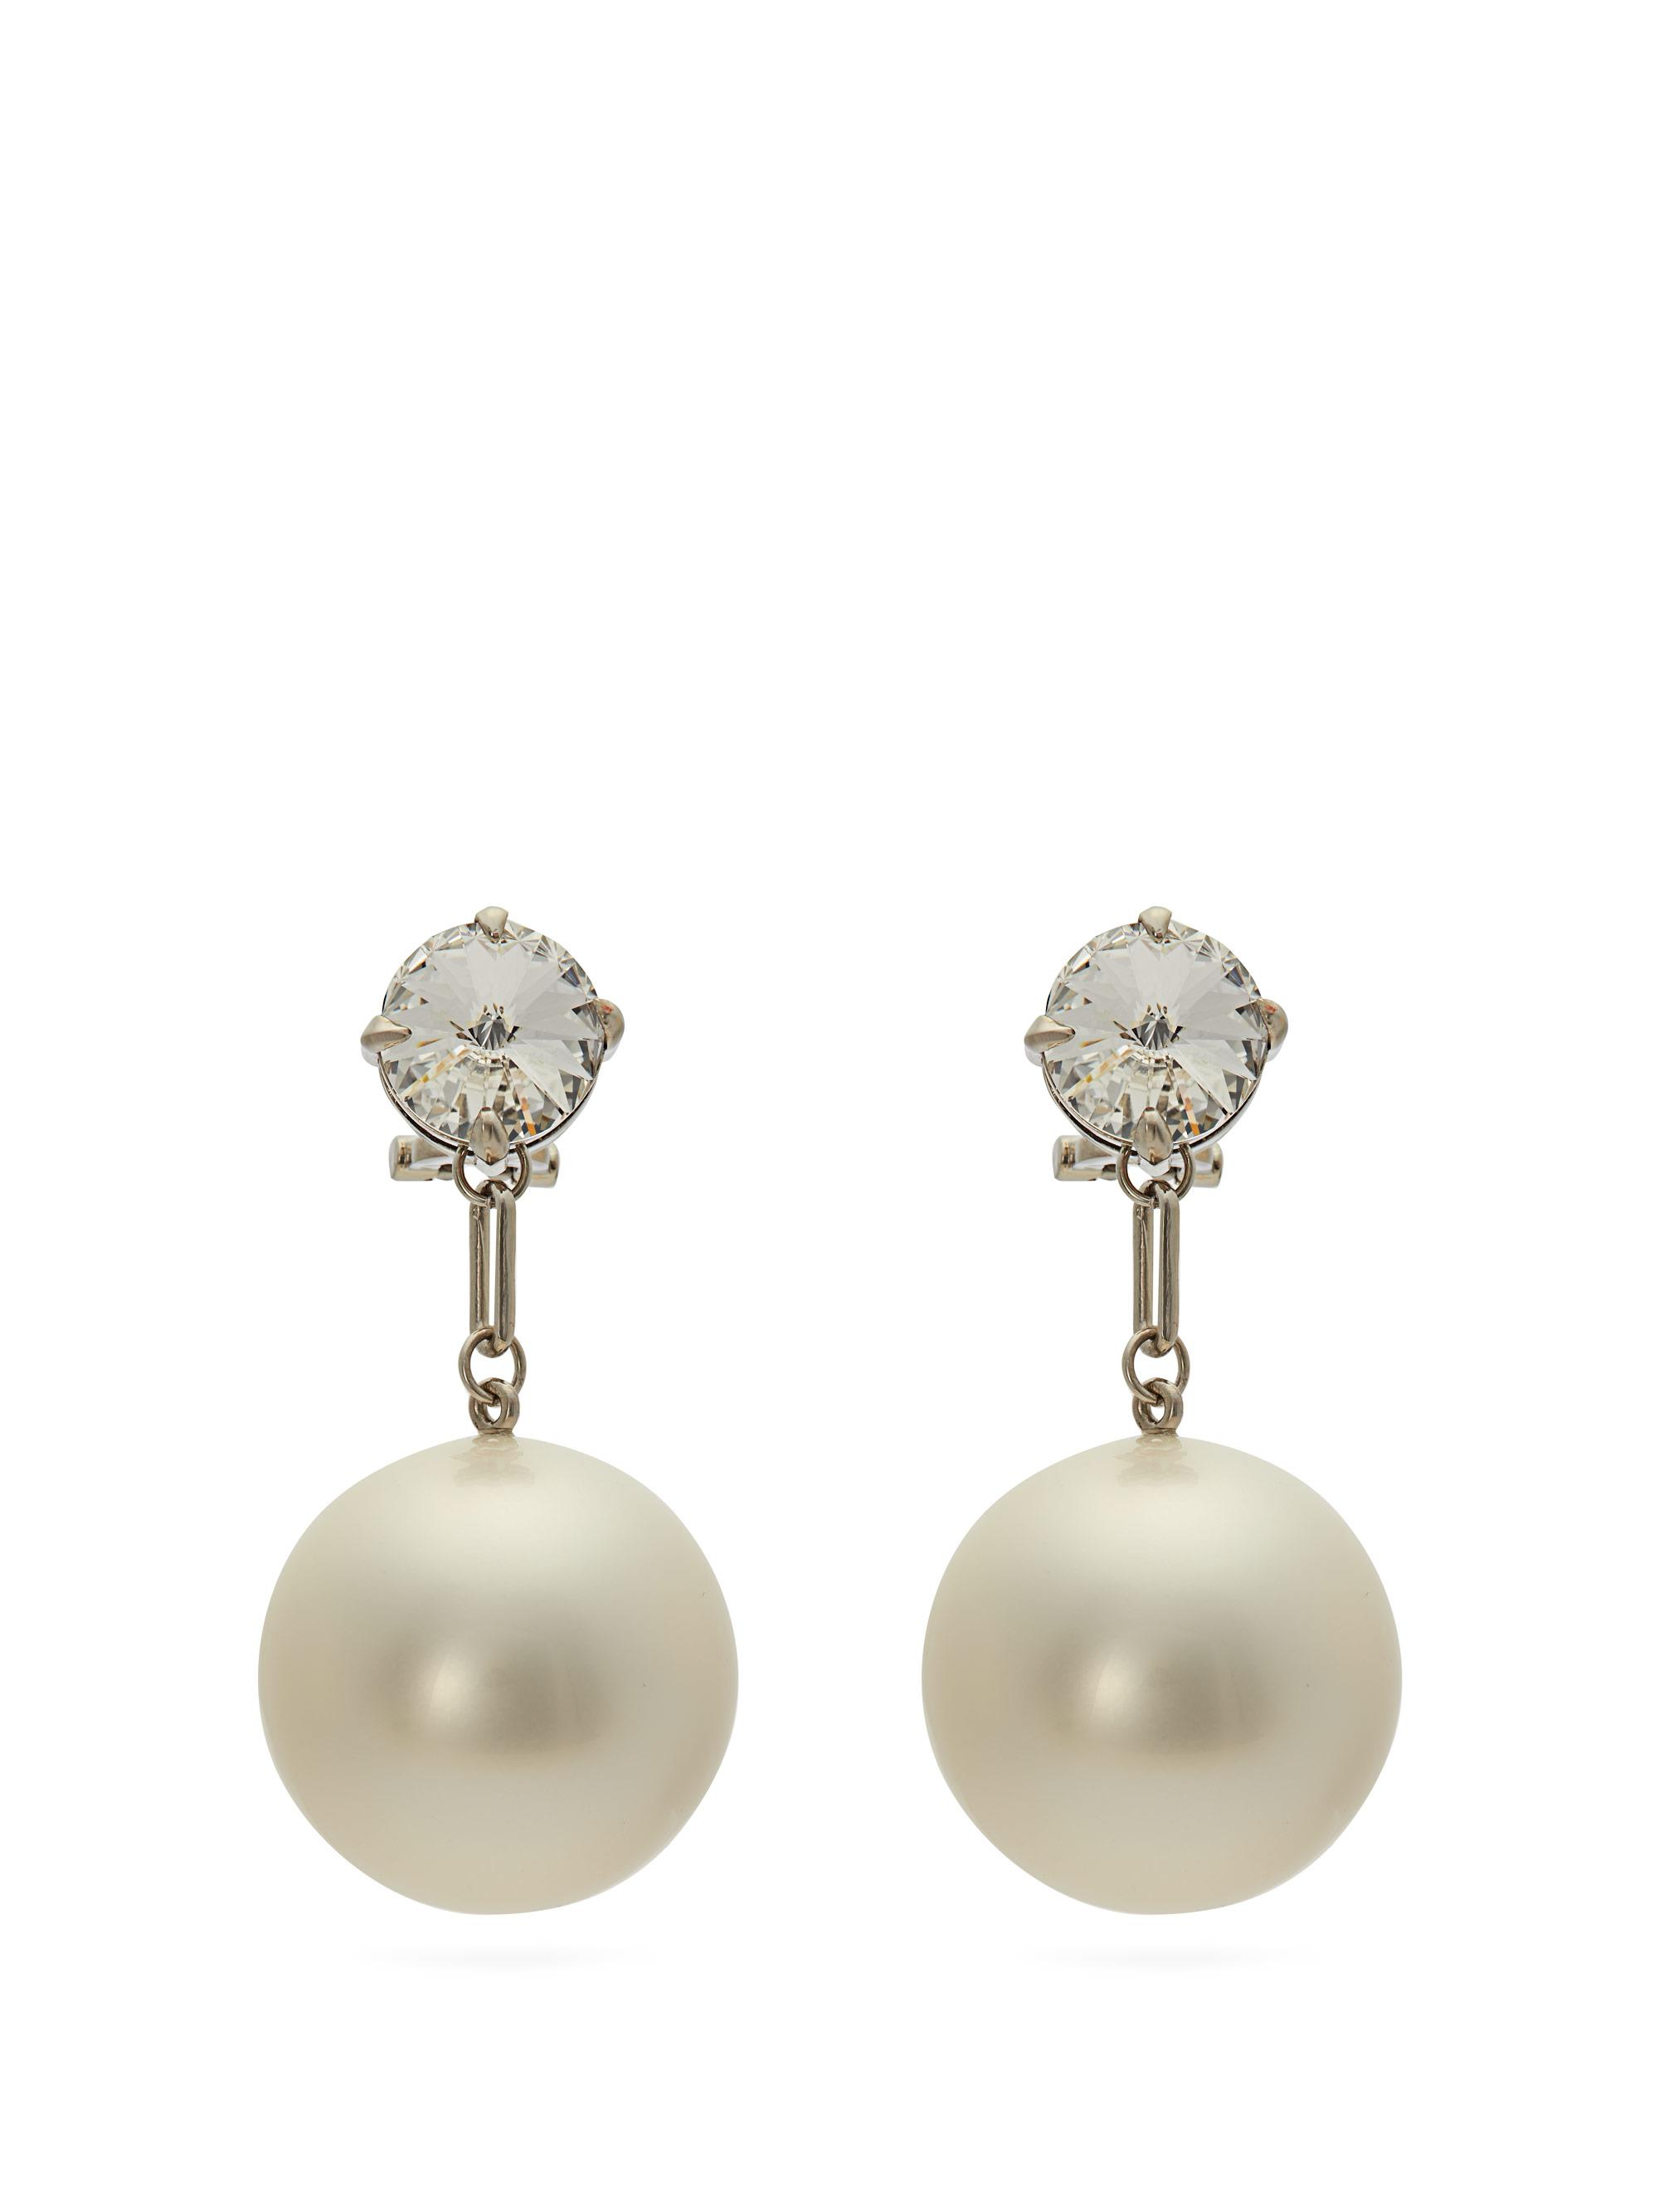 1. Miu Miu Crystal and Pearl Drop Earrings $725 from www.matchesfashion.com